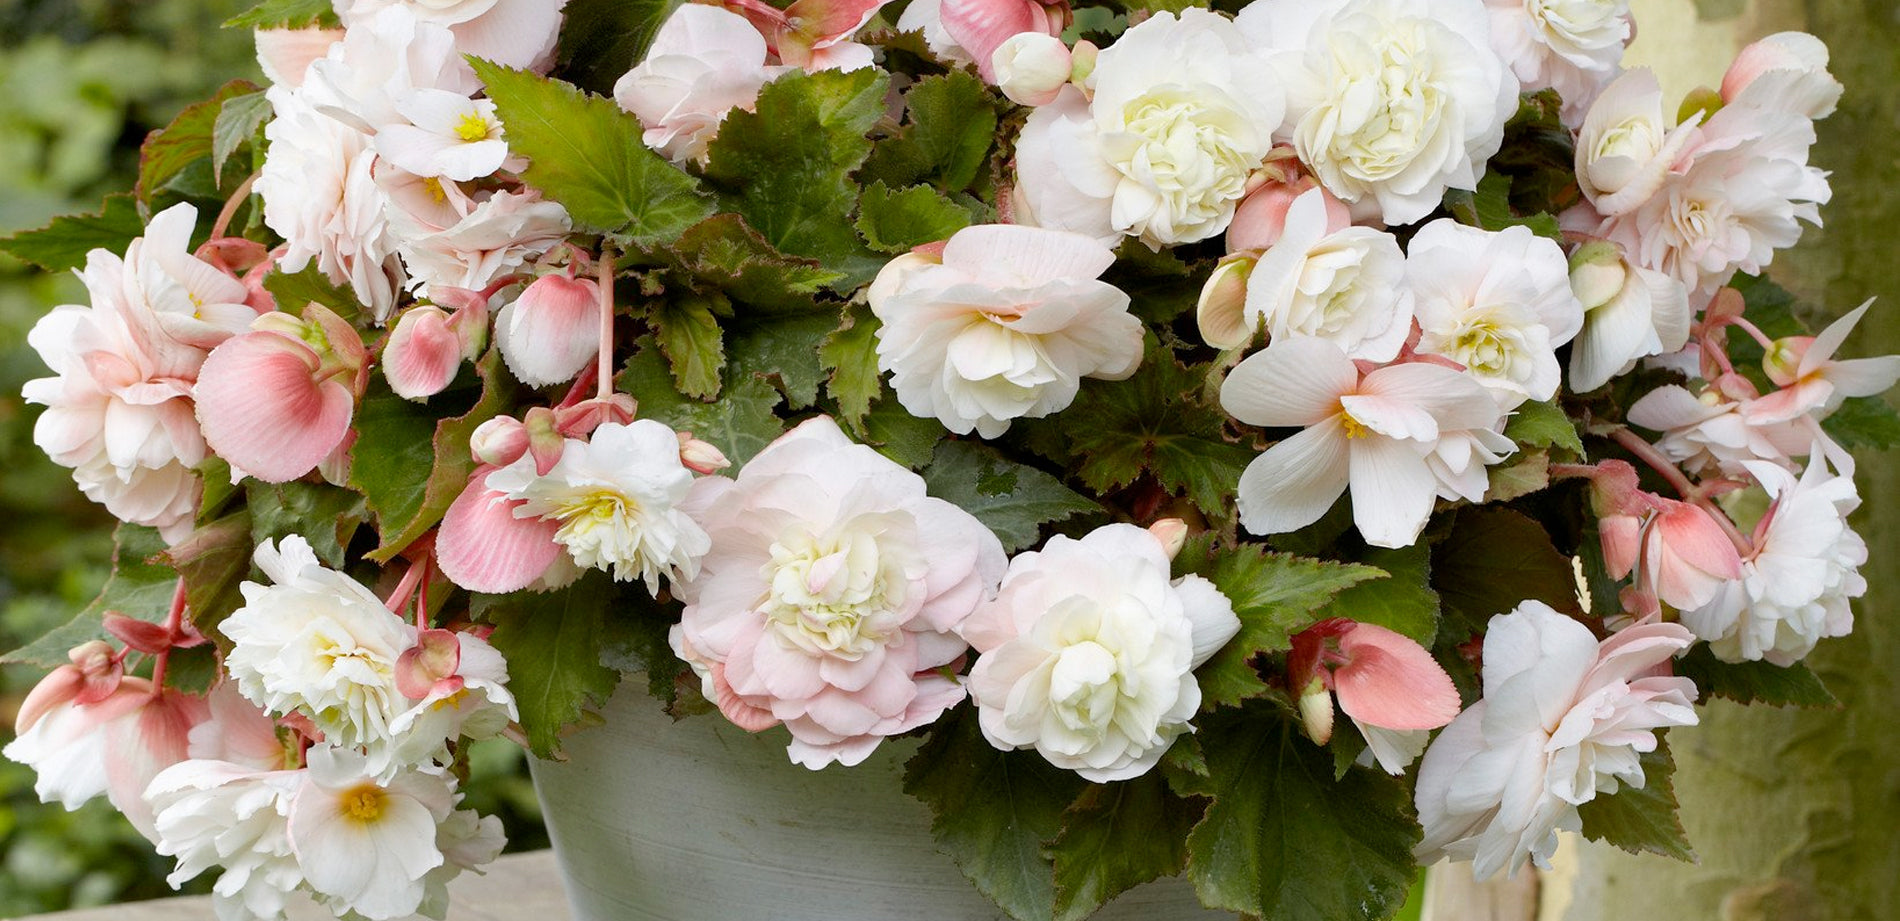 Begonias at their Best